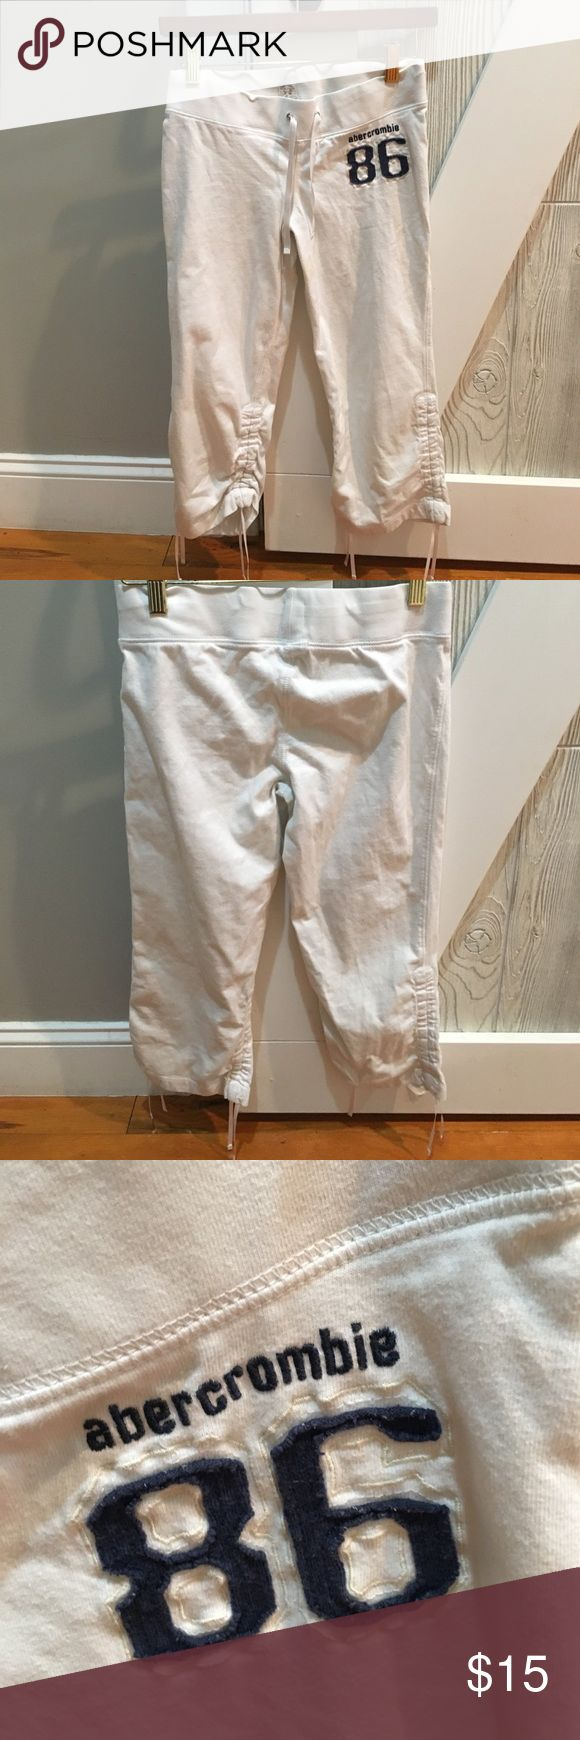 Abercrombie kids capris🎈Final days! White Abercrombie capris for spring and summer. 100% cotton; very good condition. abercrombie kids Bottoms